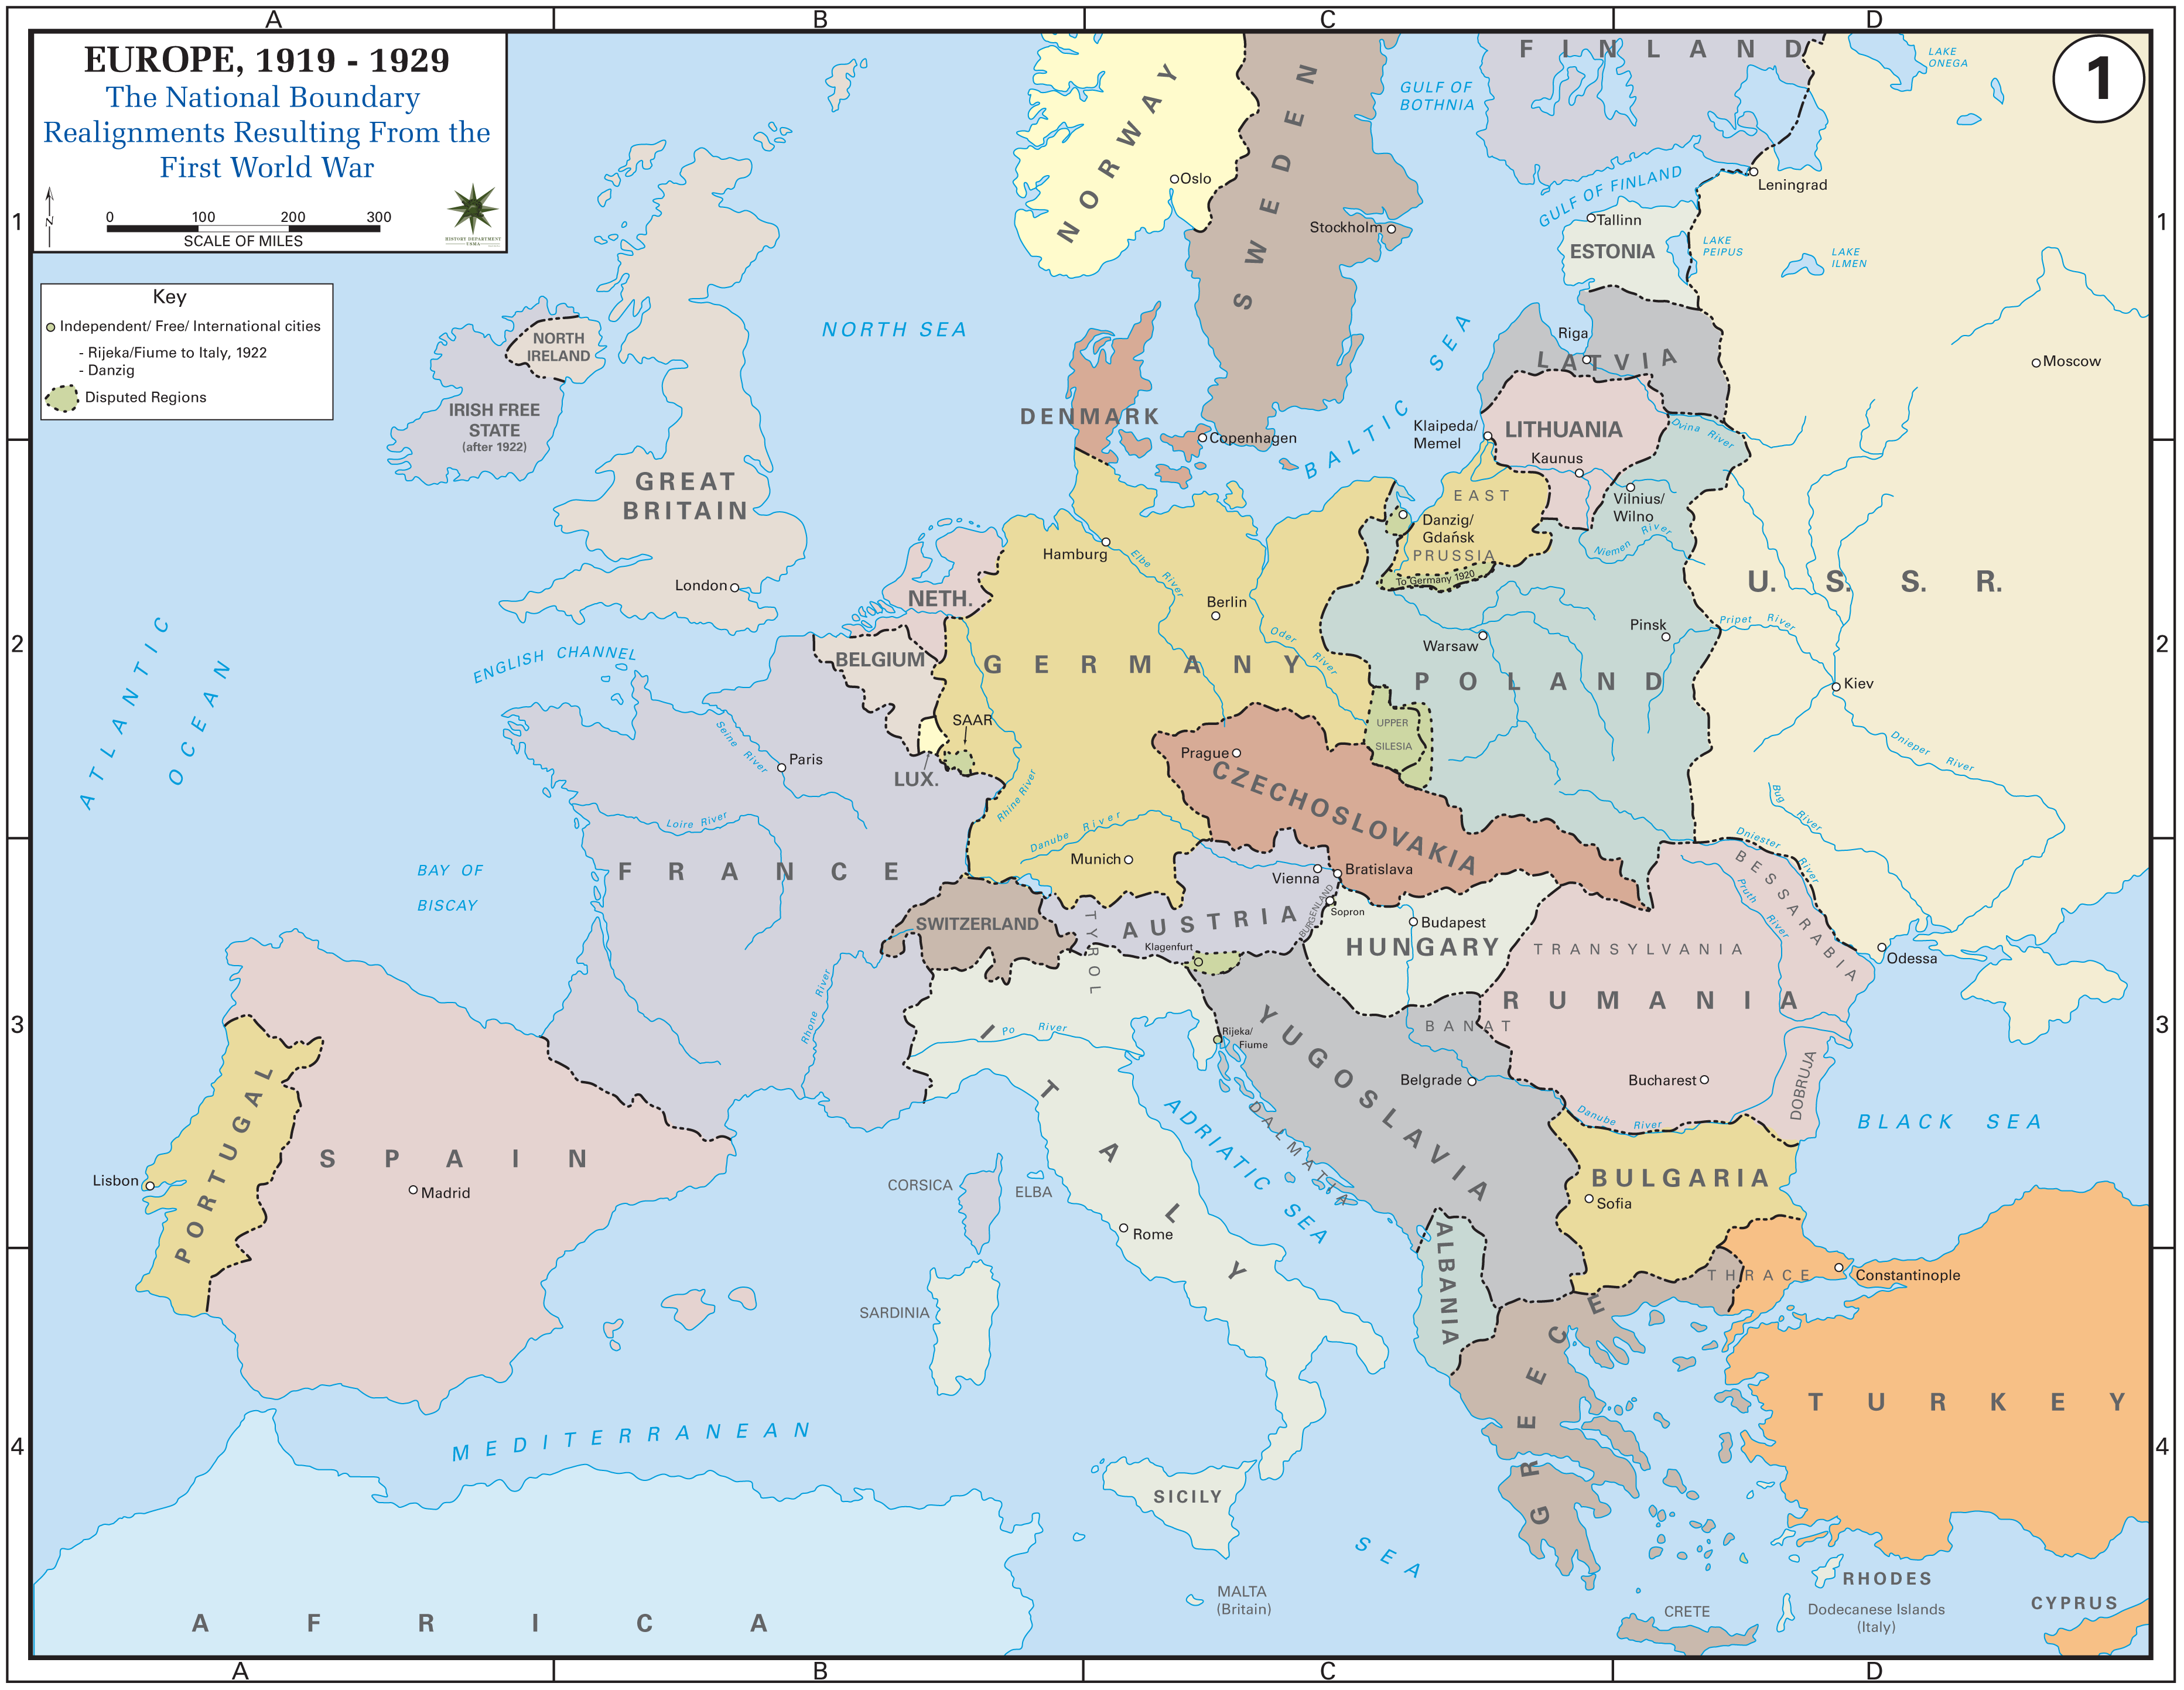 Europe after the Treaty of Versailles, 1919